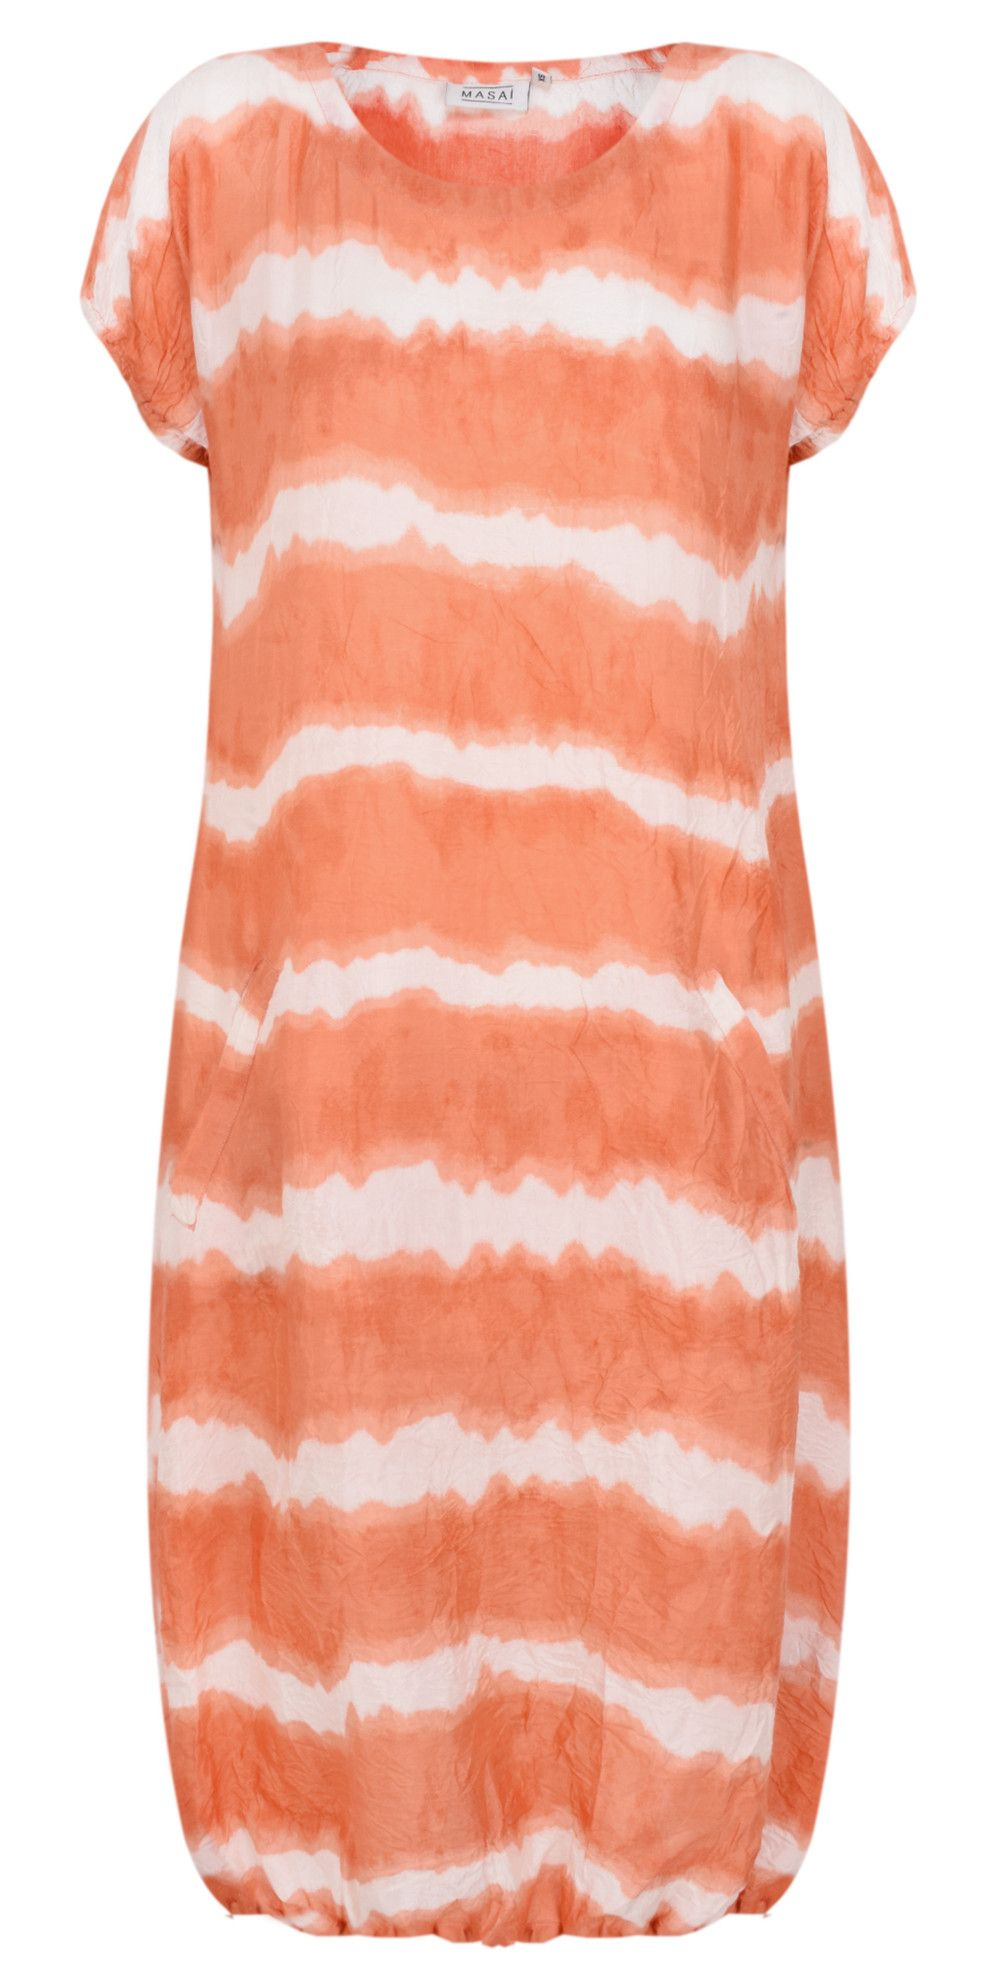 11756f0303 Shop the Masai Clothing Odile Tie-dye Dress in Apricot Org online at Gemini  Woman